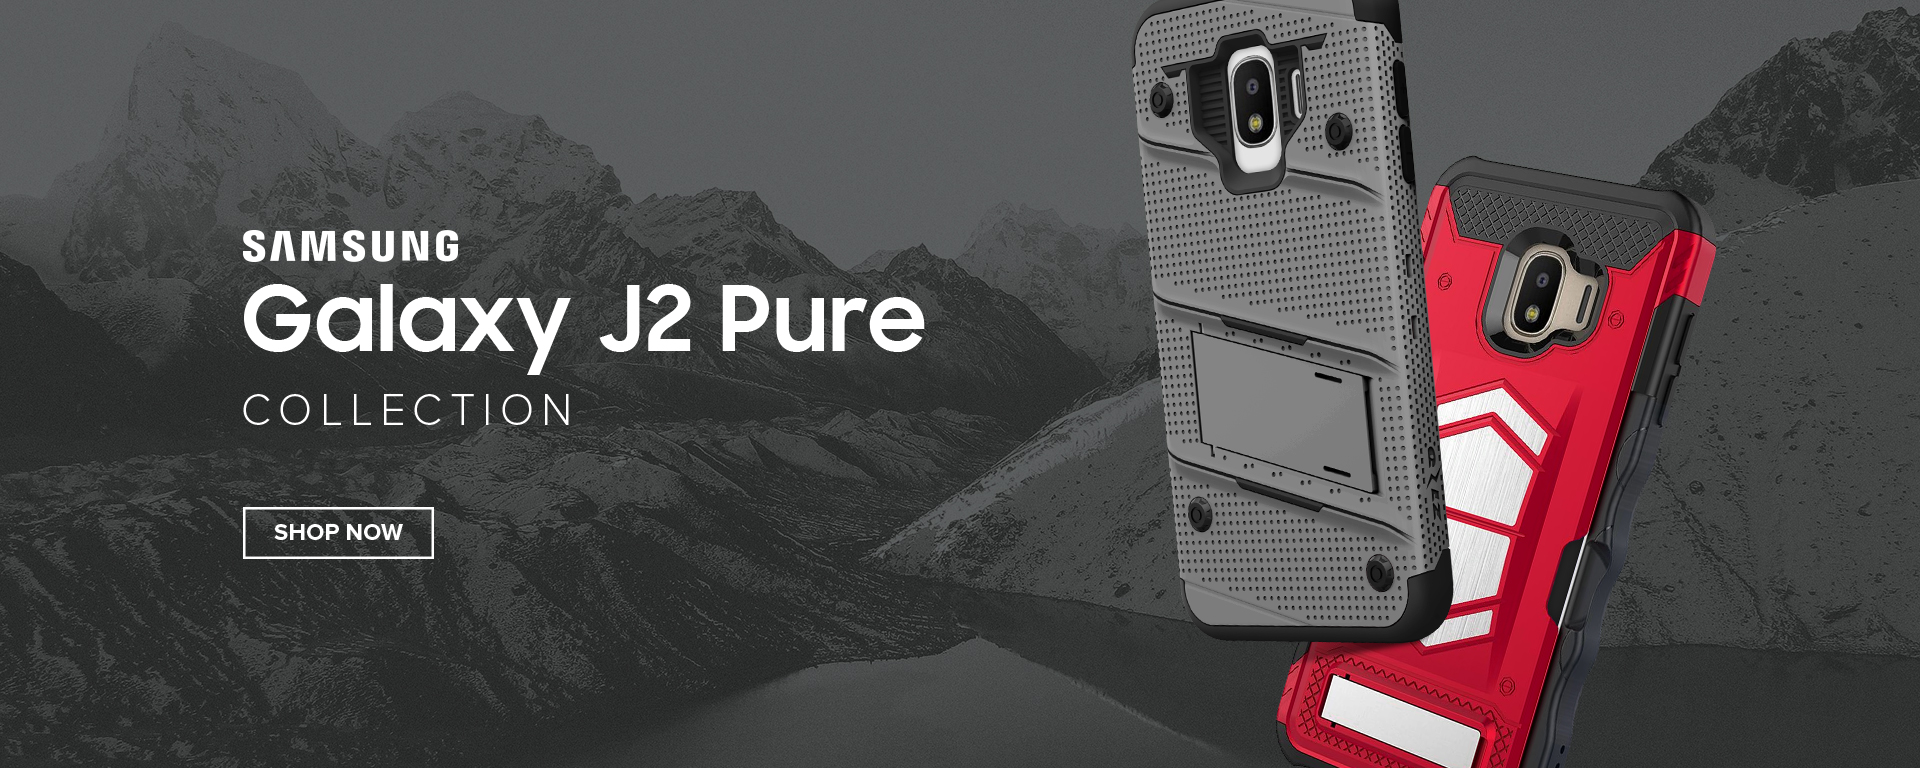 The Samsung Galaxy J2 Pure Collection